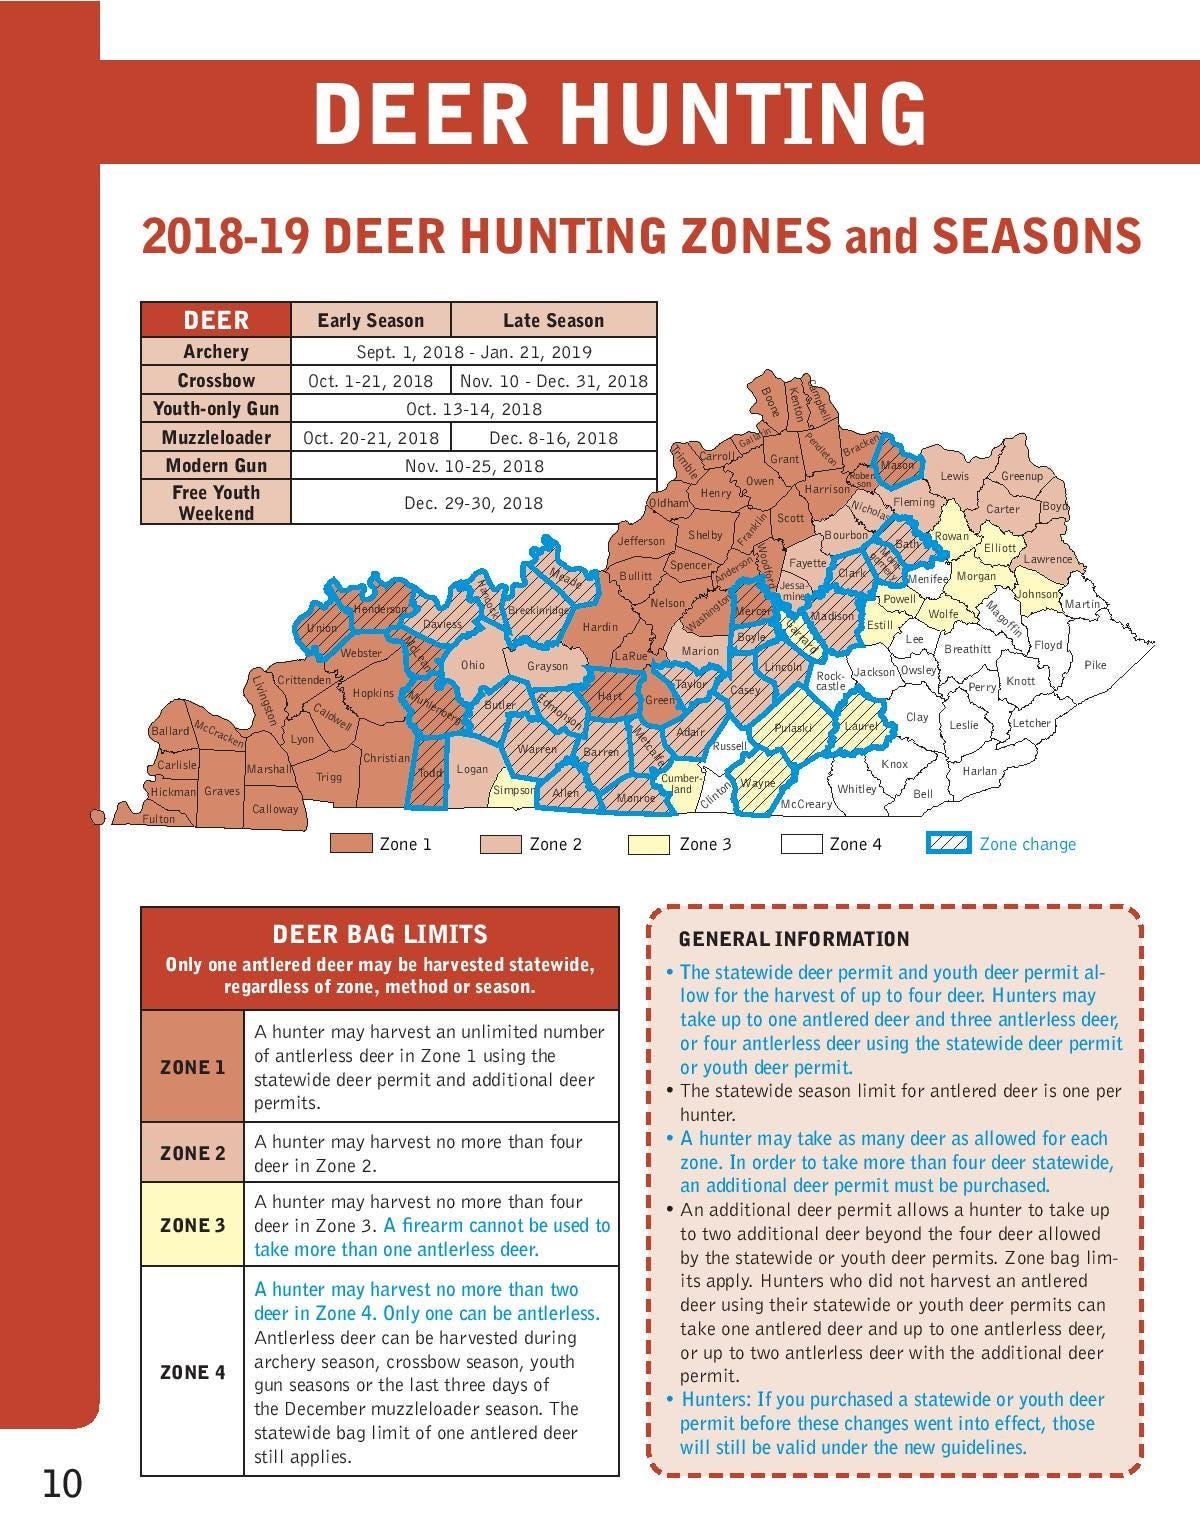 Kentucky Hunting and Trapping Guideline for new changes available now